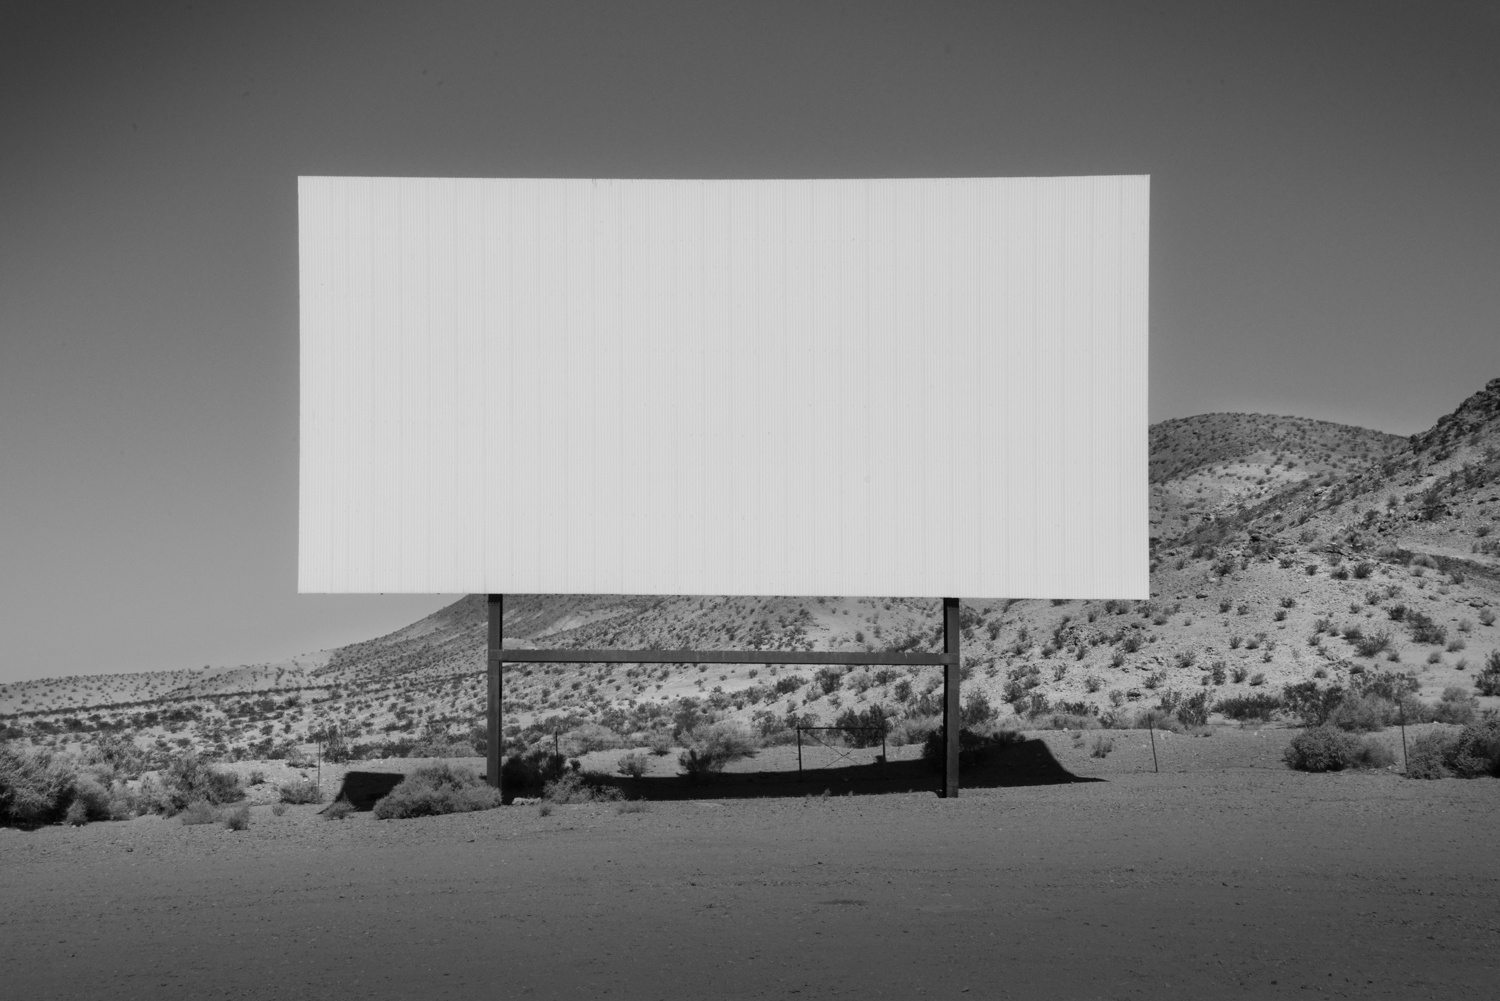 Drive in theatre, Barstow, California © Robert Welkie